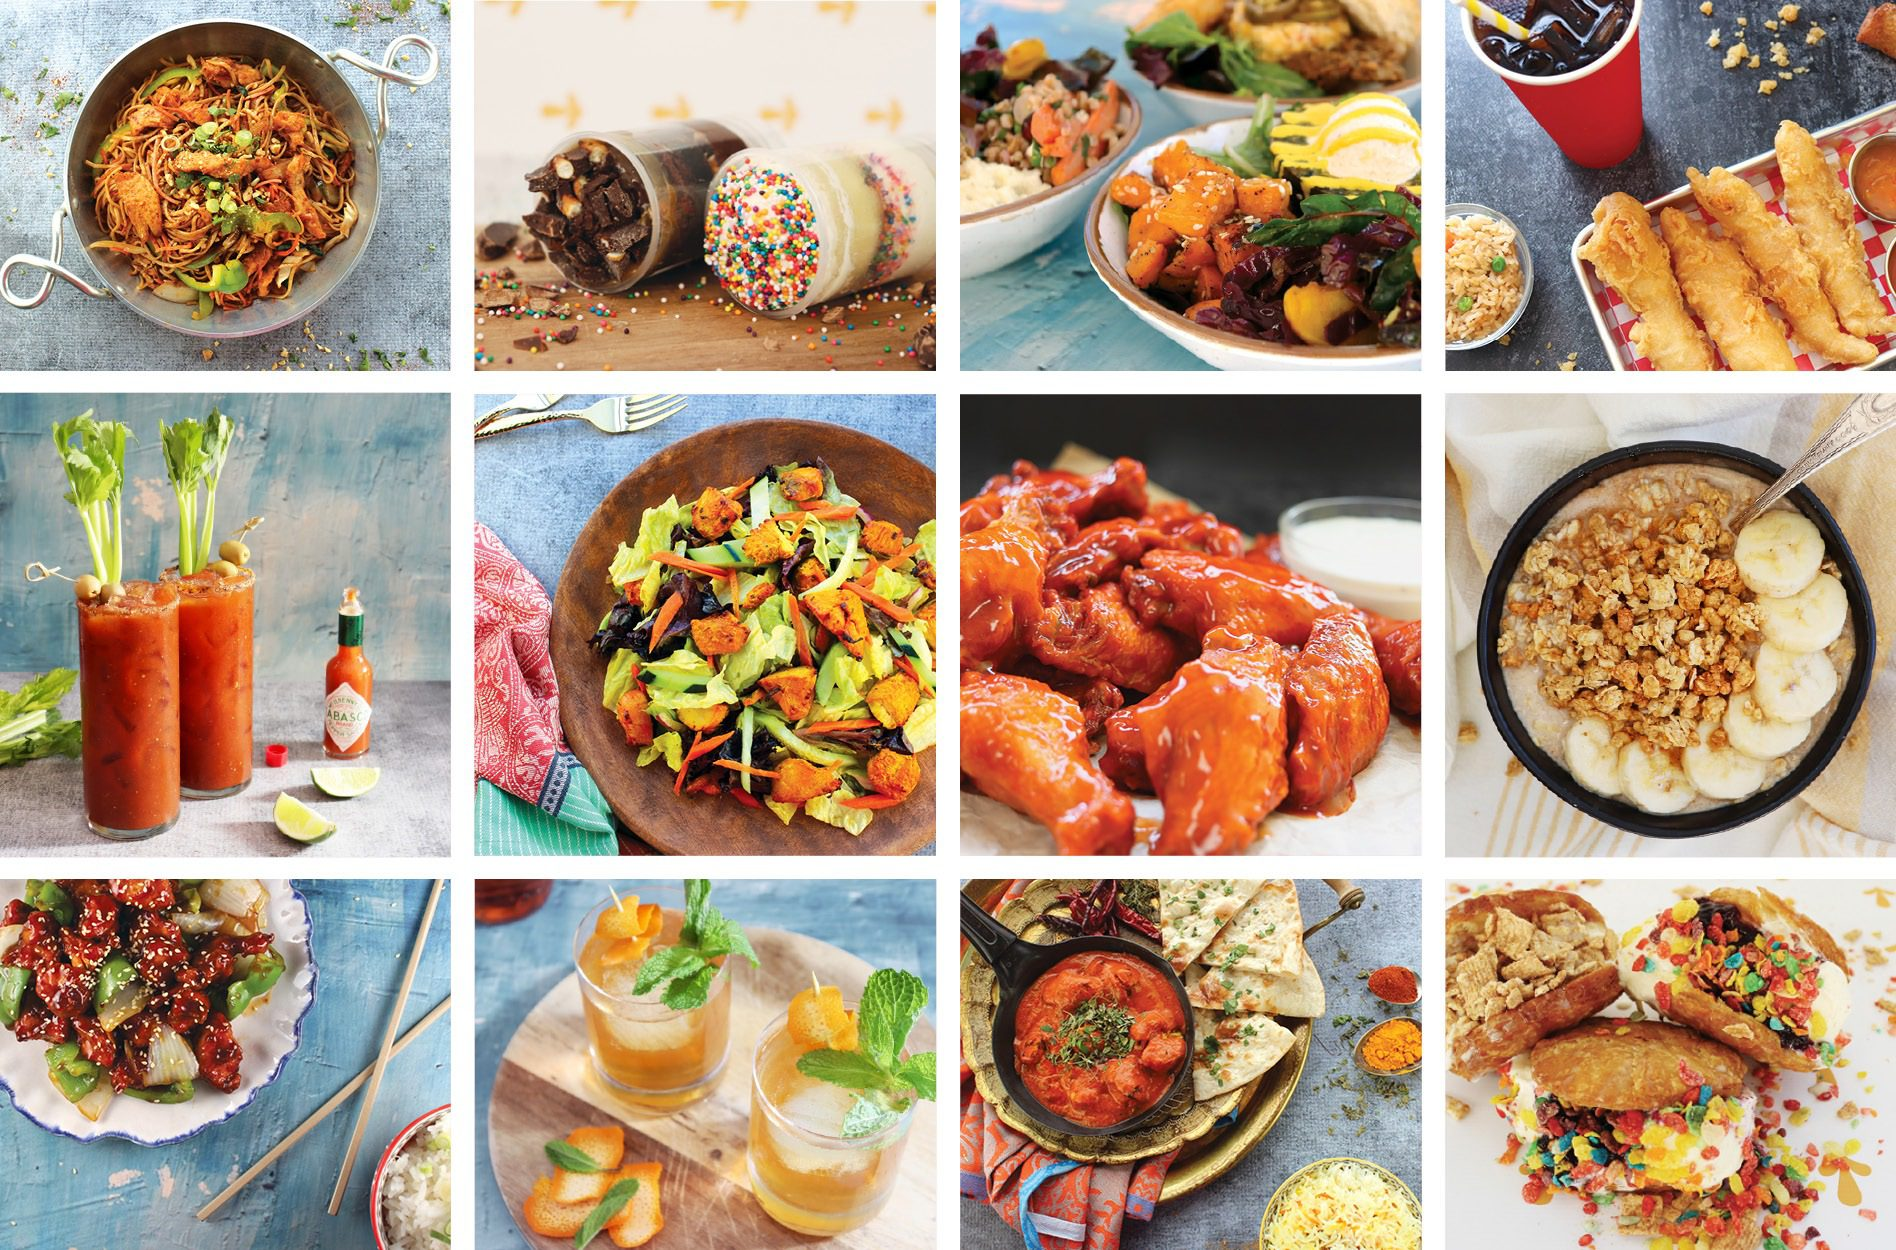 professional food styling photos